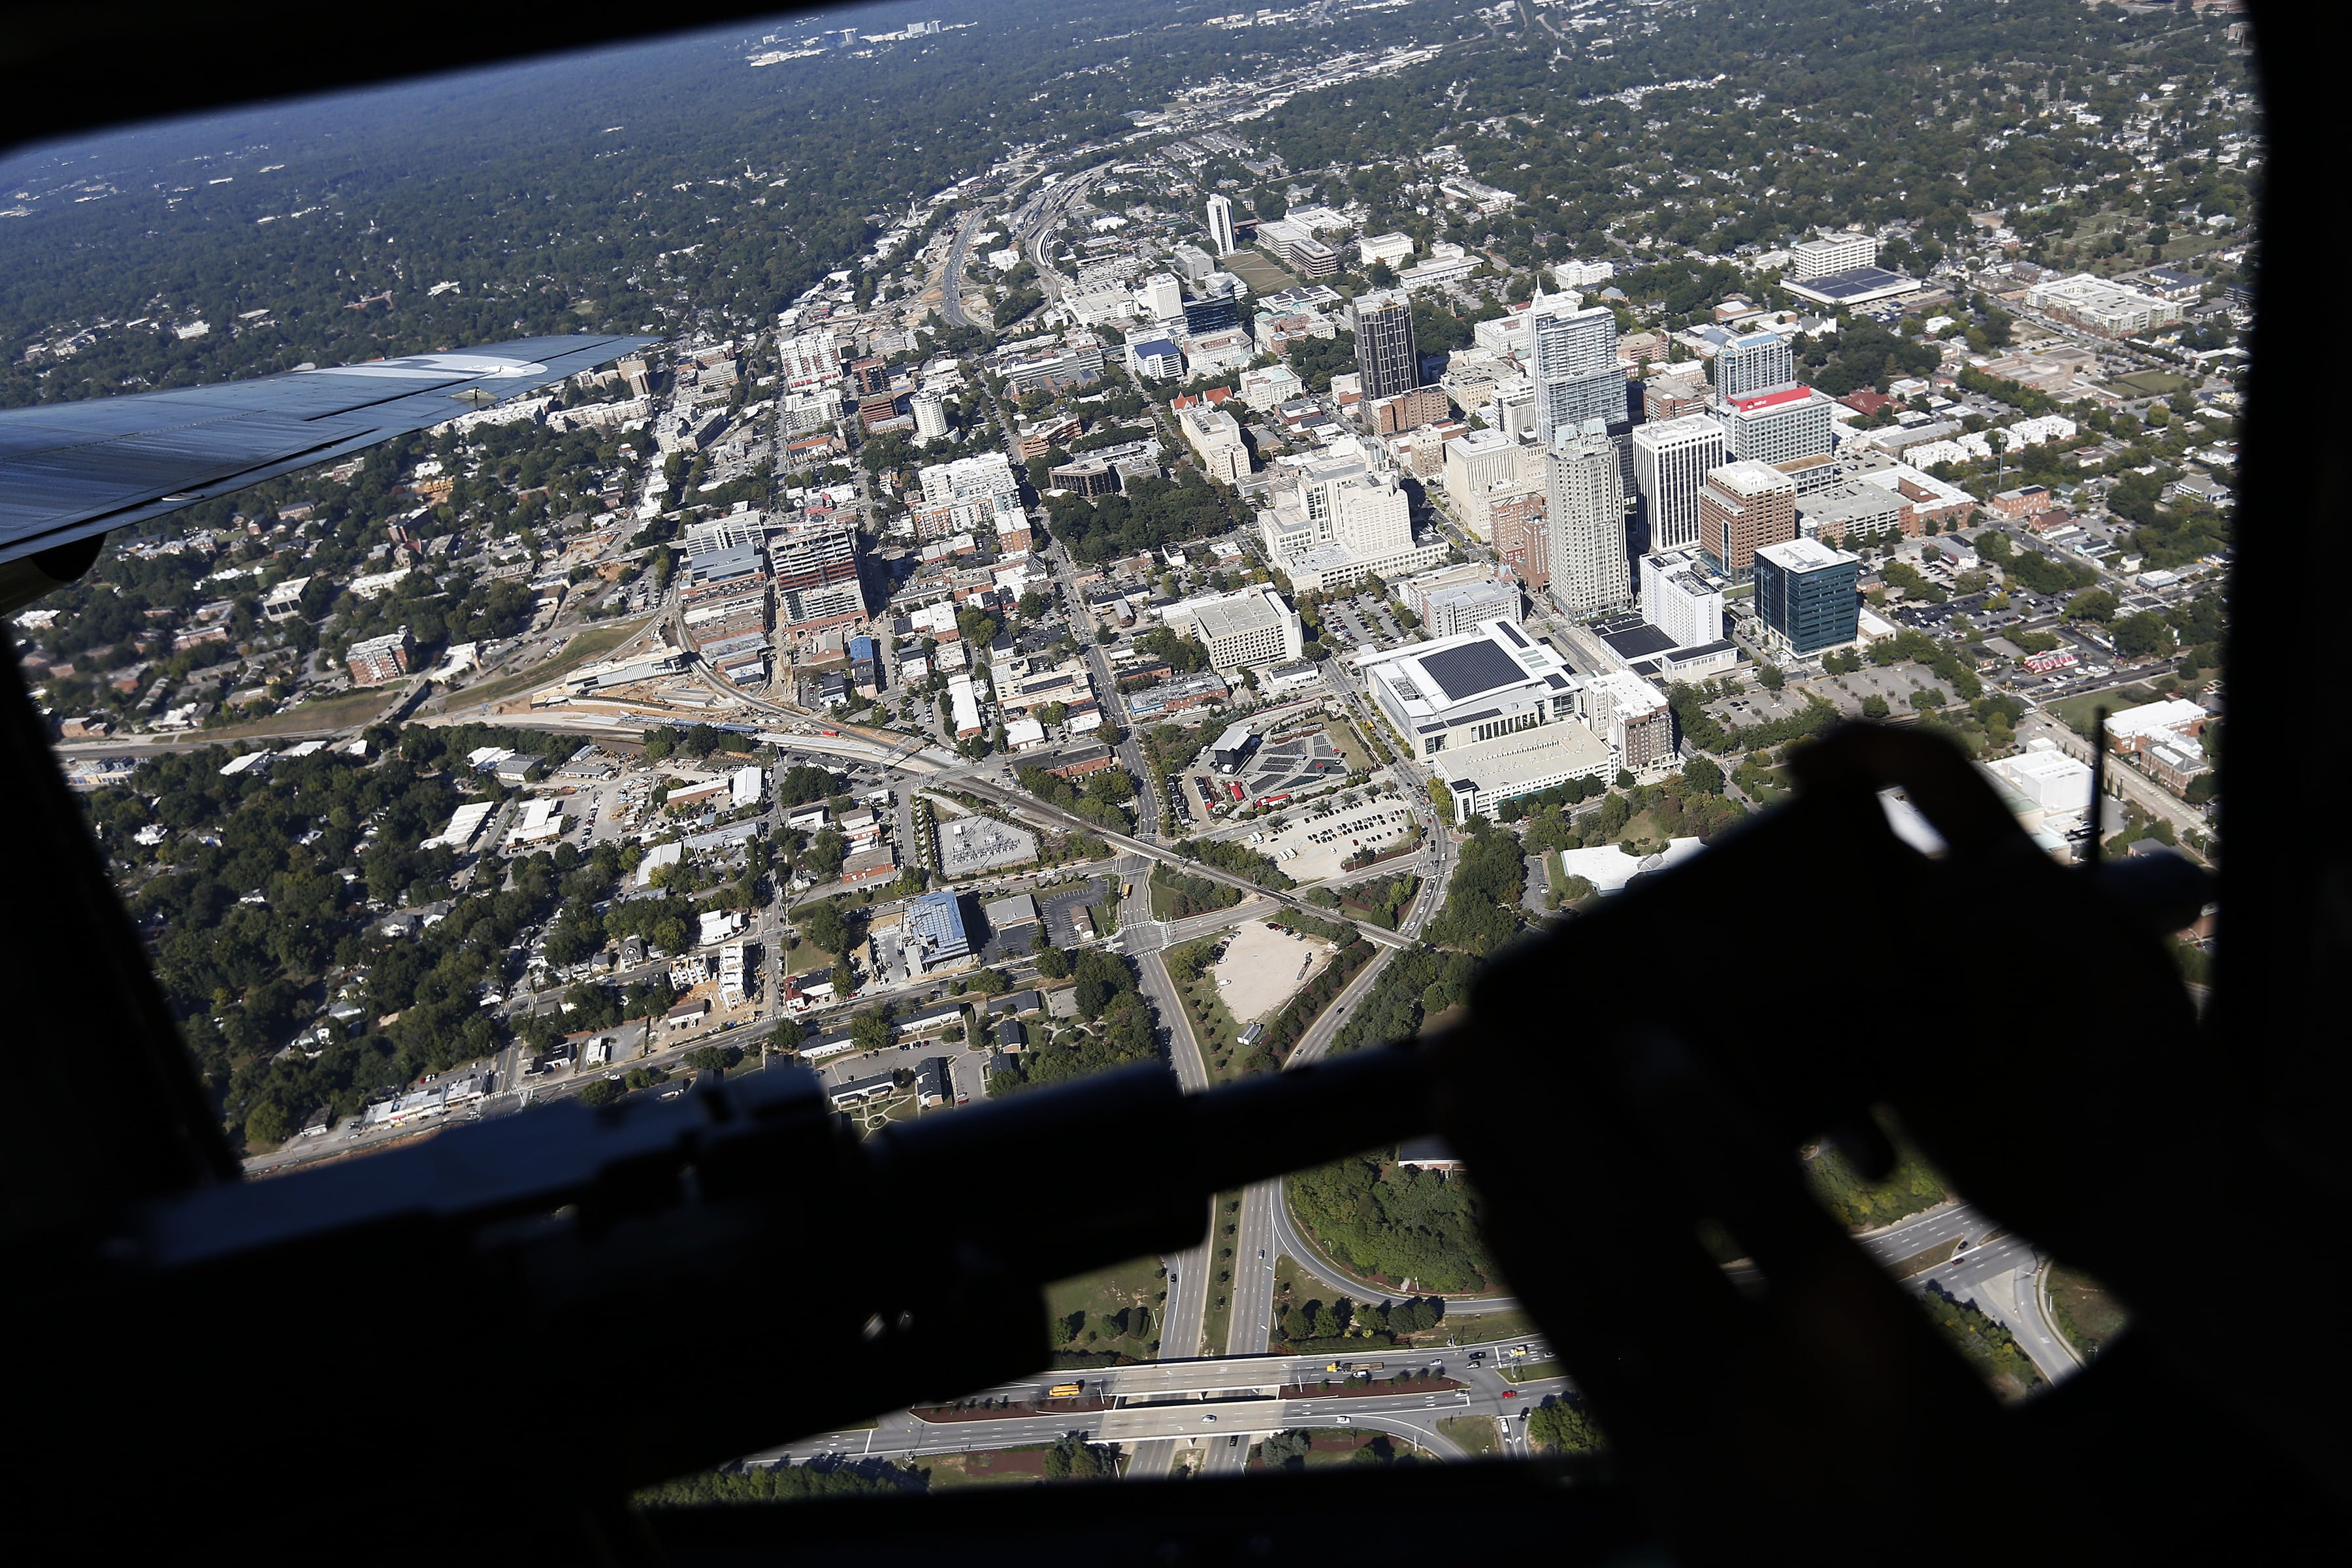 The world's only flying B-24J Liberator soars over downtown Raleigh after taking off at Raleigh-Durham International Airport during the Wings of Freedom Tour, October 19, 2017. Hosted by the Collings Foundation, Wings of Freedom visits more than 100 cities a year to show off working pieces of American war history as well as to educate people about the veterans of WWII. The tour will be in Burlington, NC until 12 pm on Oct. 25 and then move to Statesville, NC through Oct. 27. (Eamon Queeney / North State Journal)